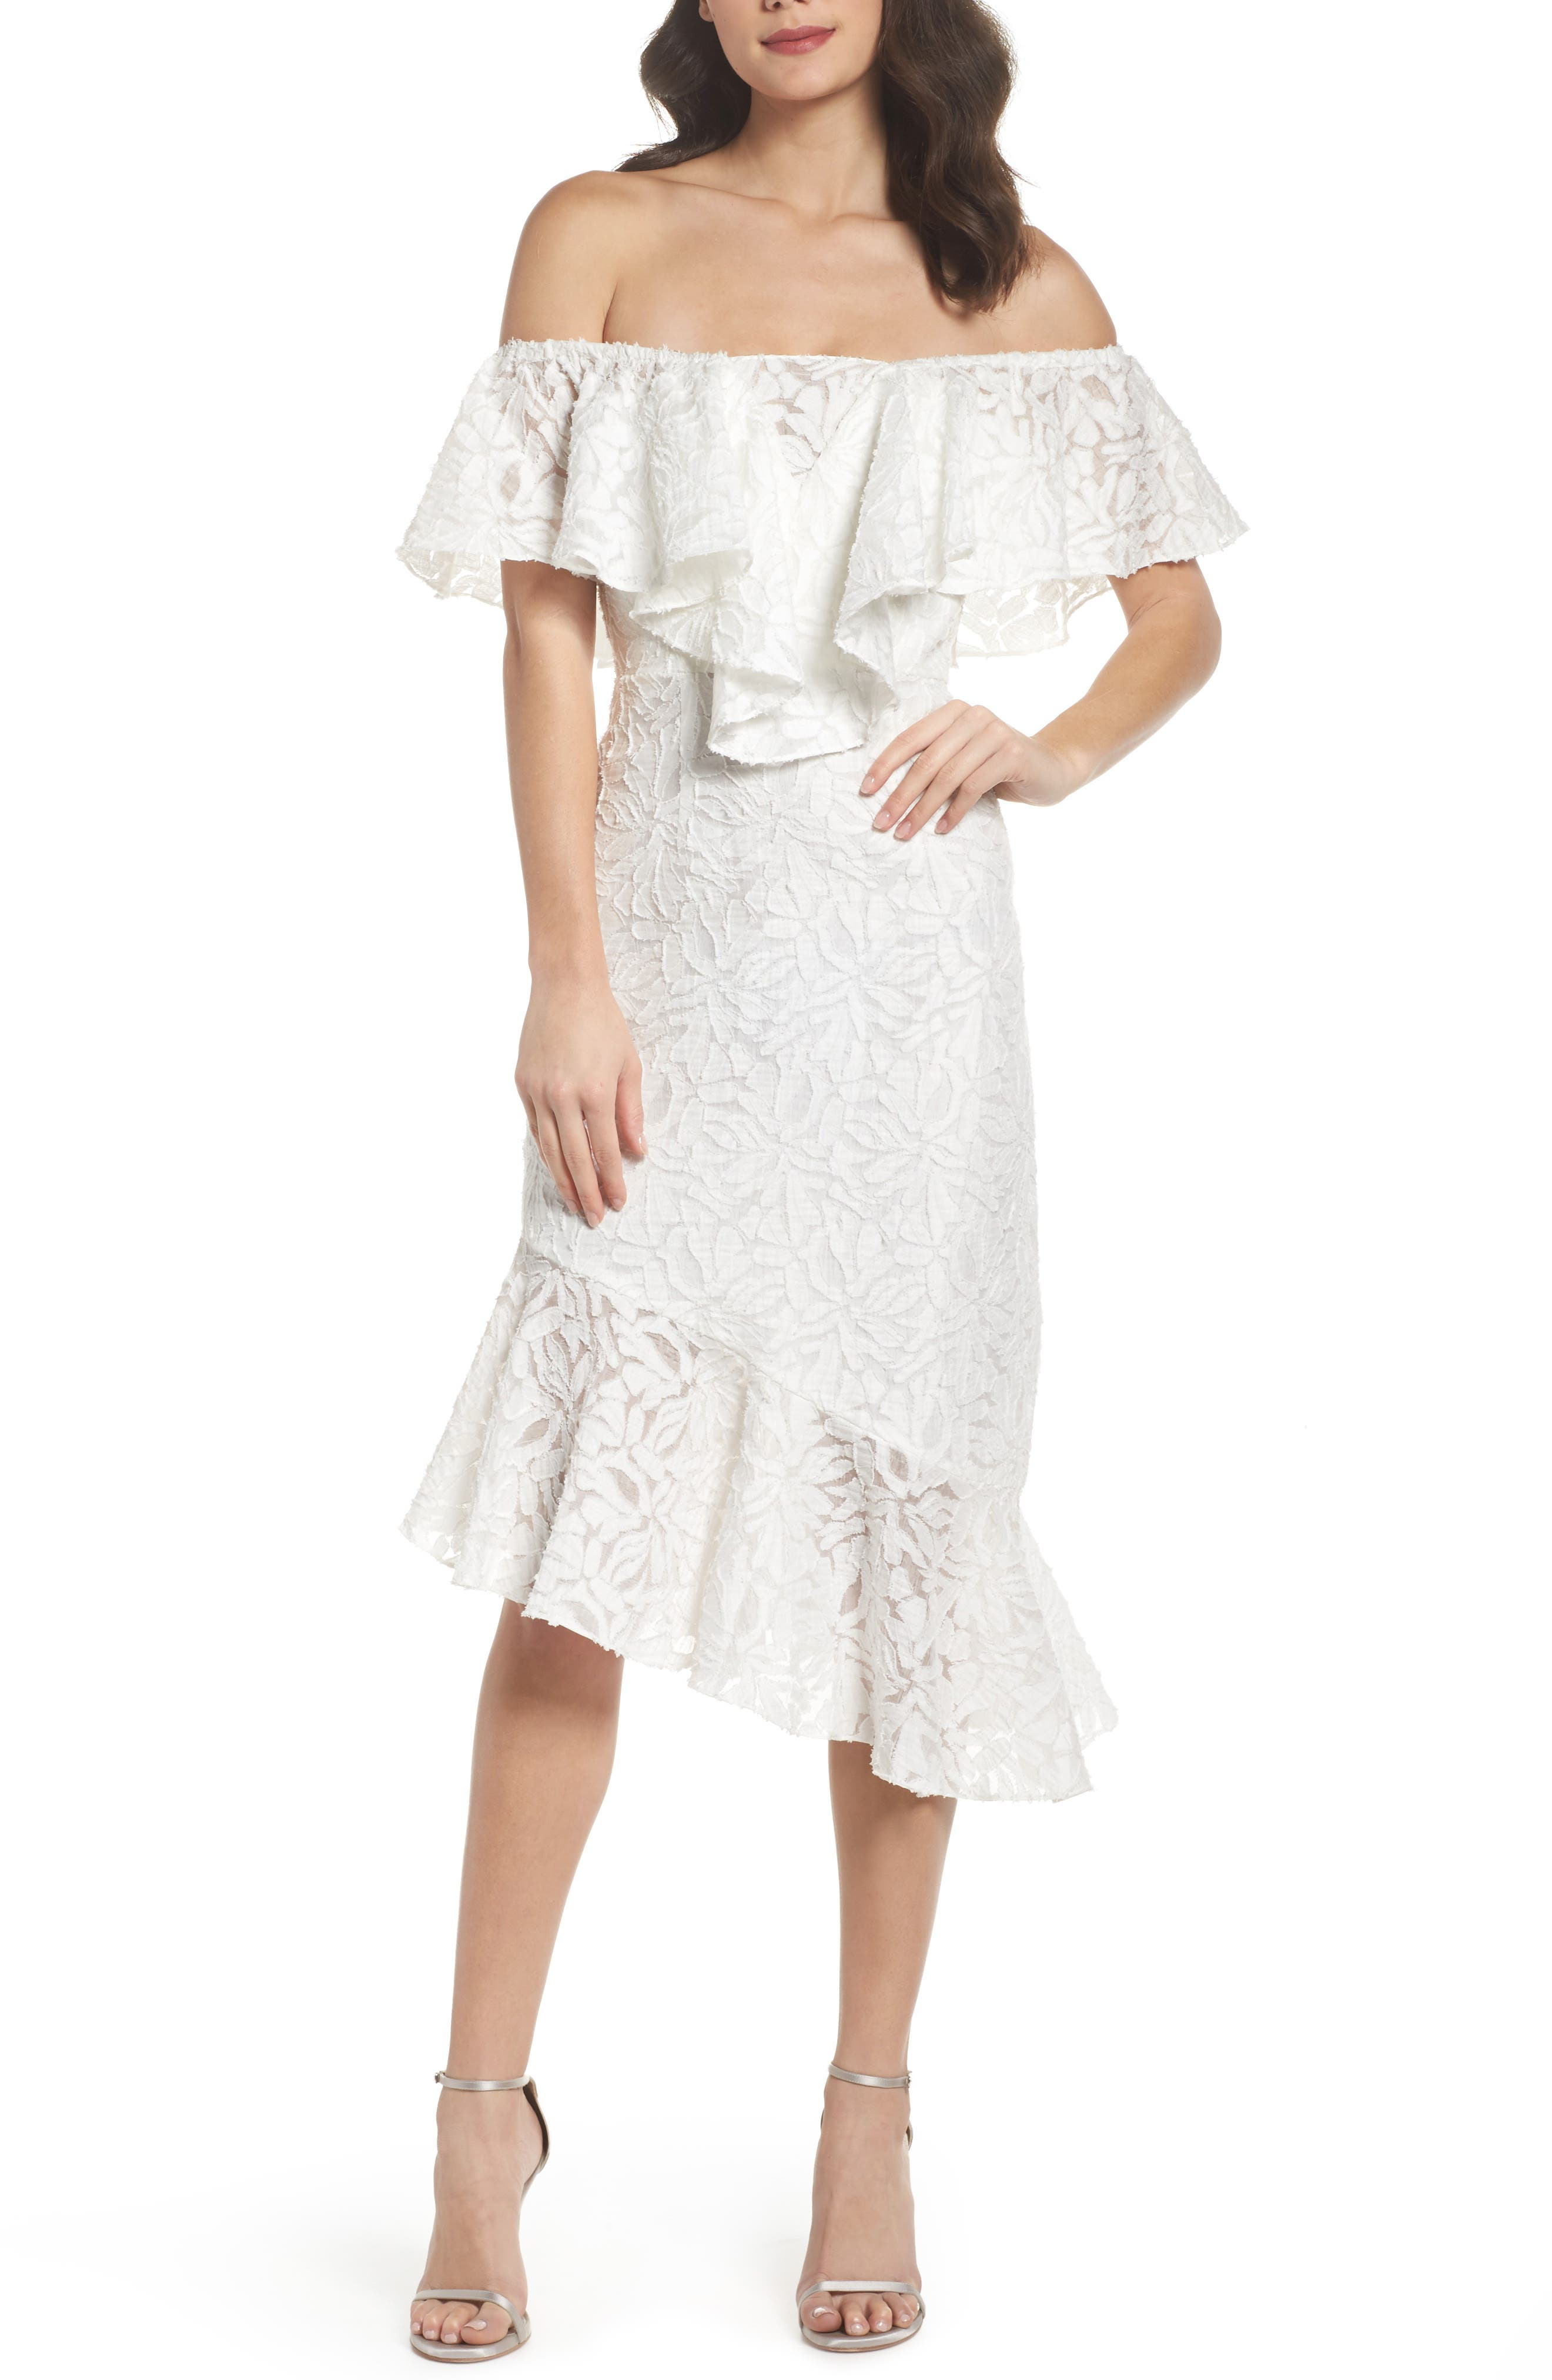 C/MEO More to Give Off the Shoulder Midi Dress